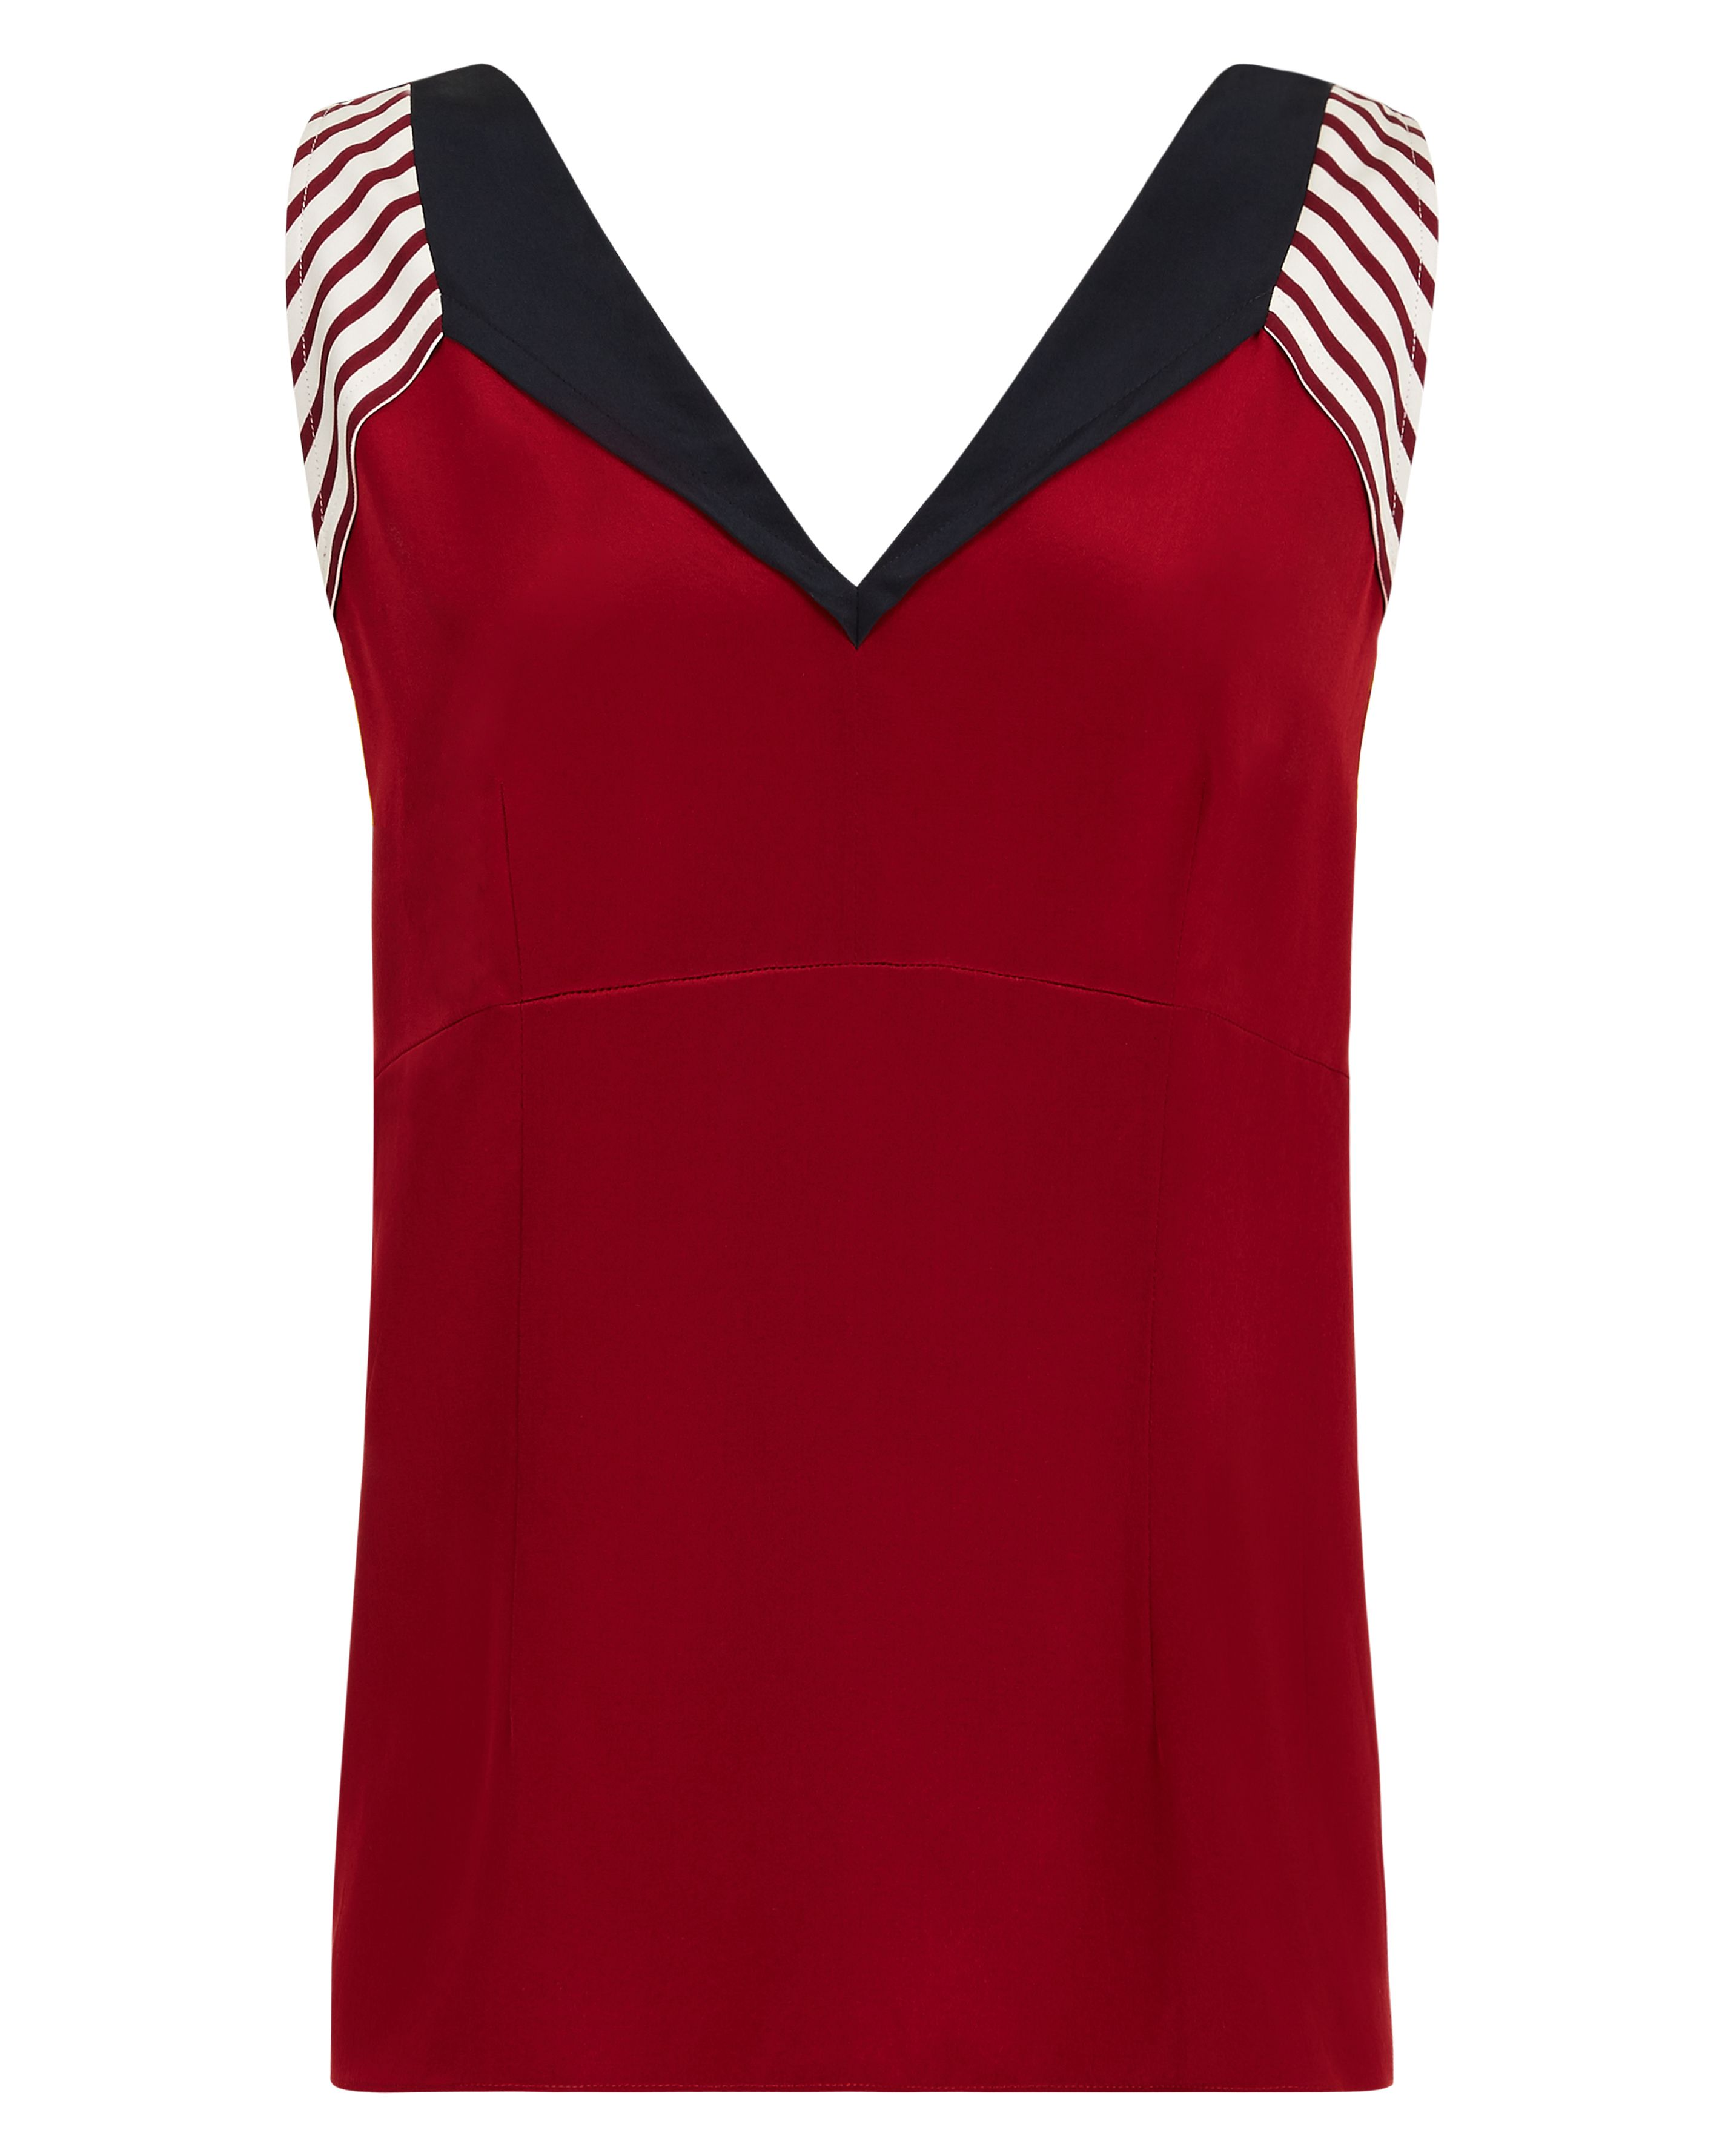 Jaeger Silk Colour Block Panel Top, Red